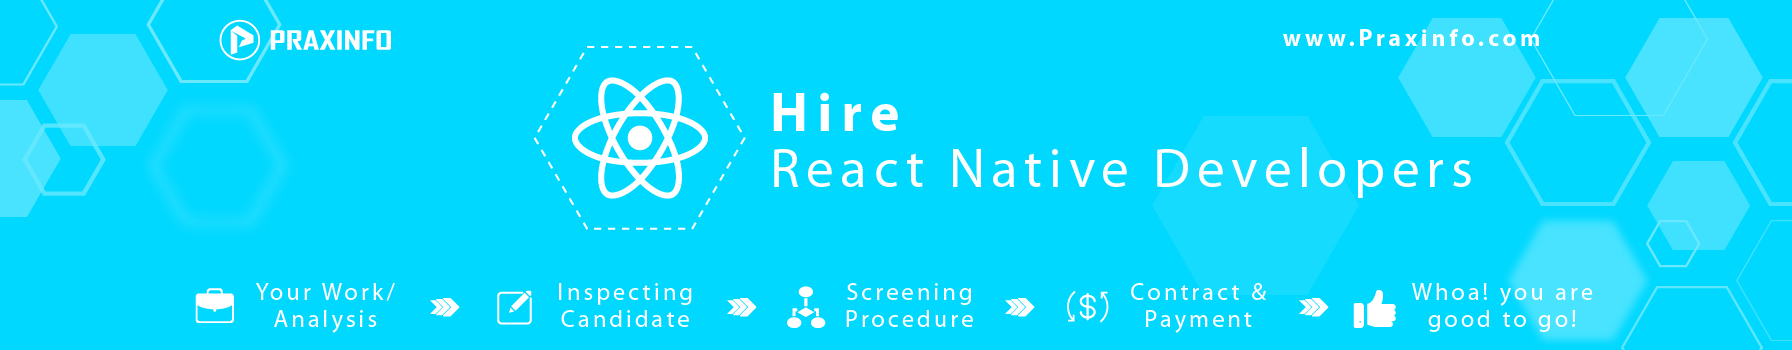 PRAXINFO-hire-react-native-development.jpg